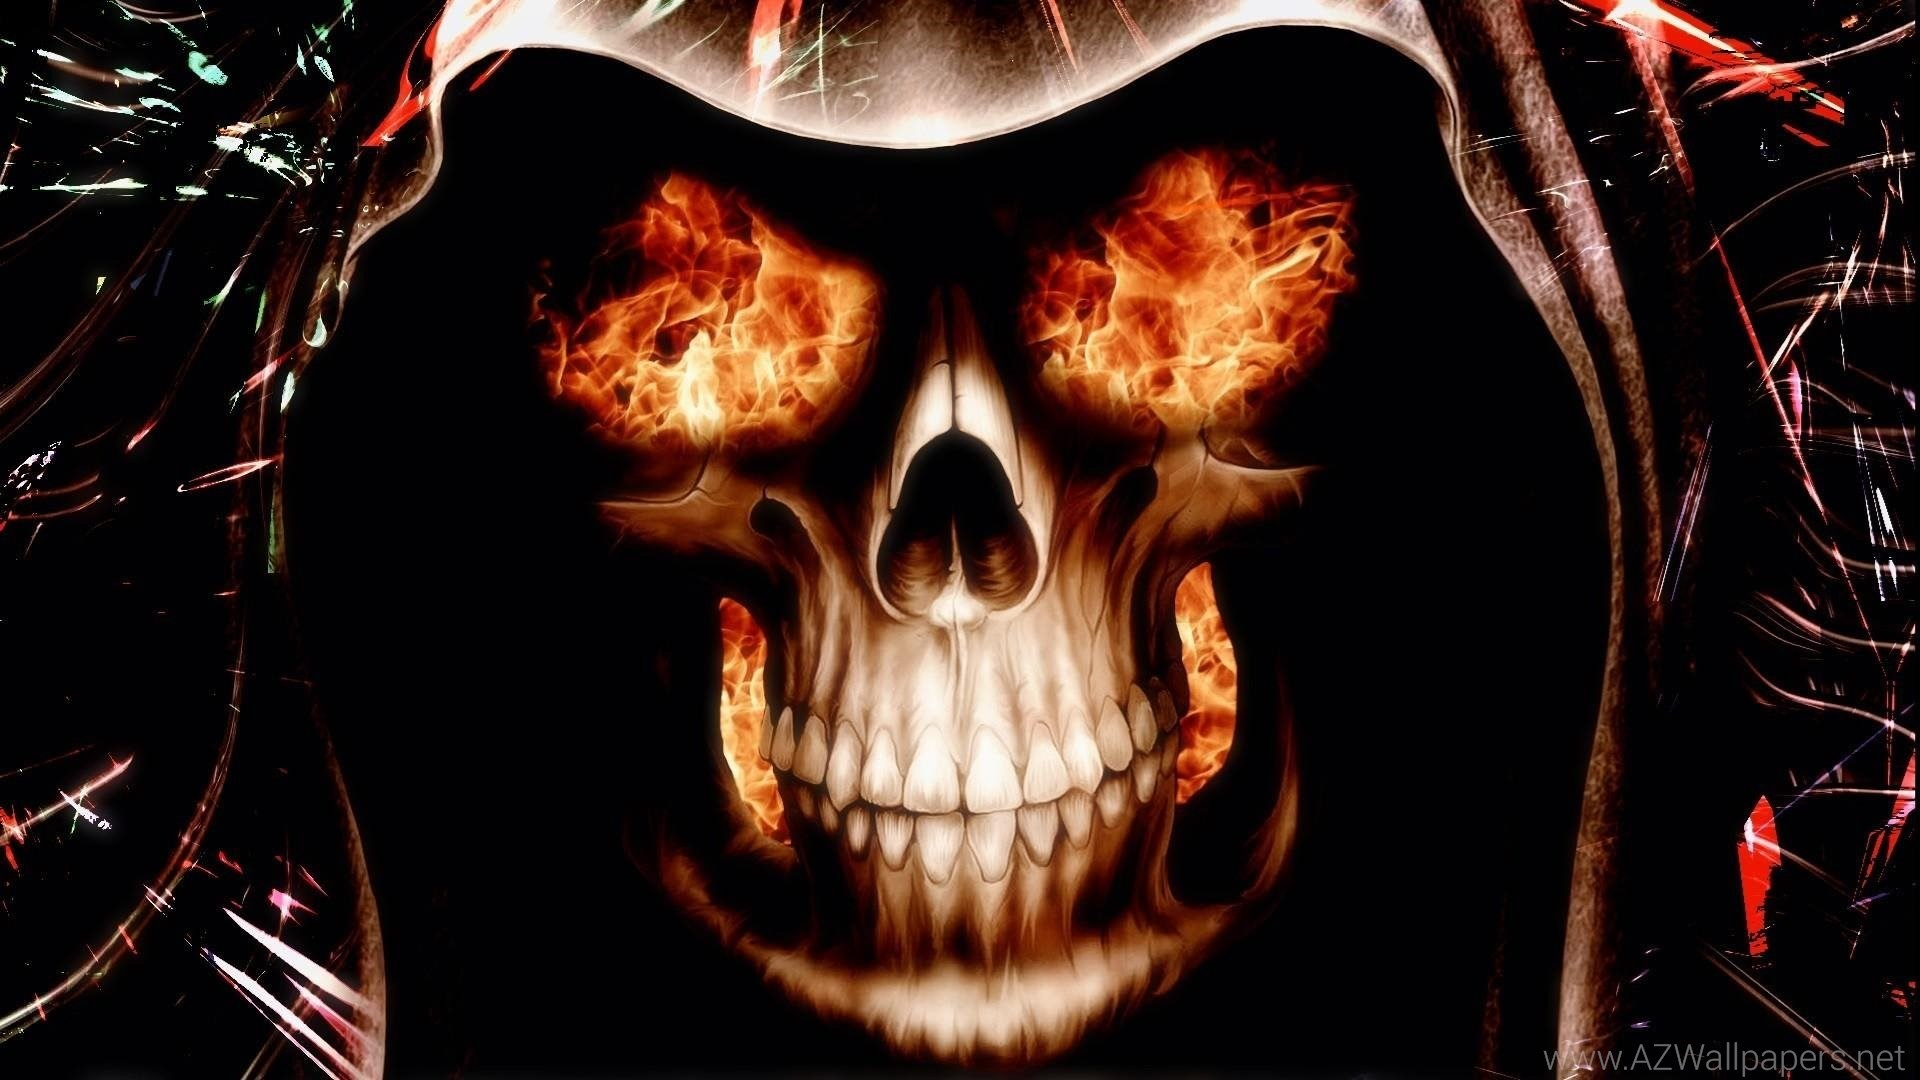 fire skull wallpapers. Black Bedroom Furniture Sets. Home Design Ideas